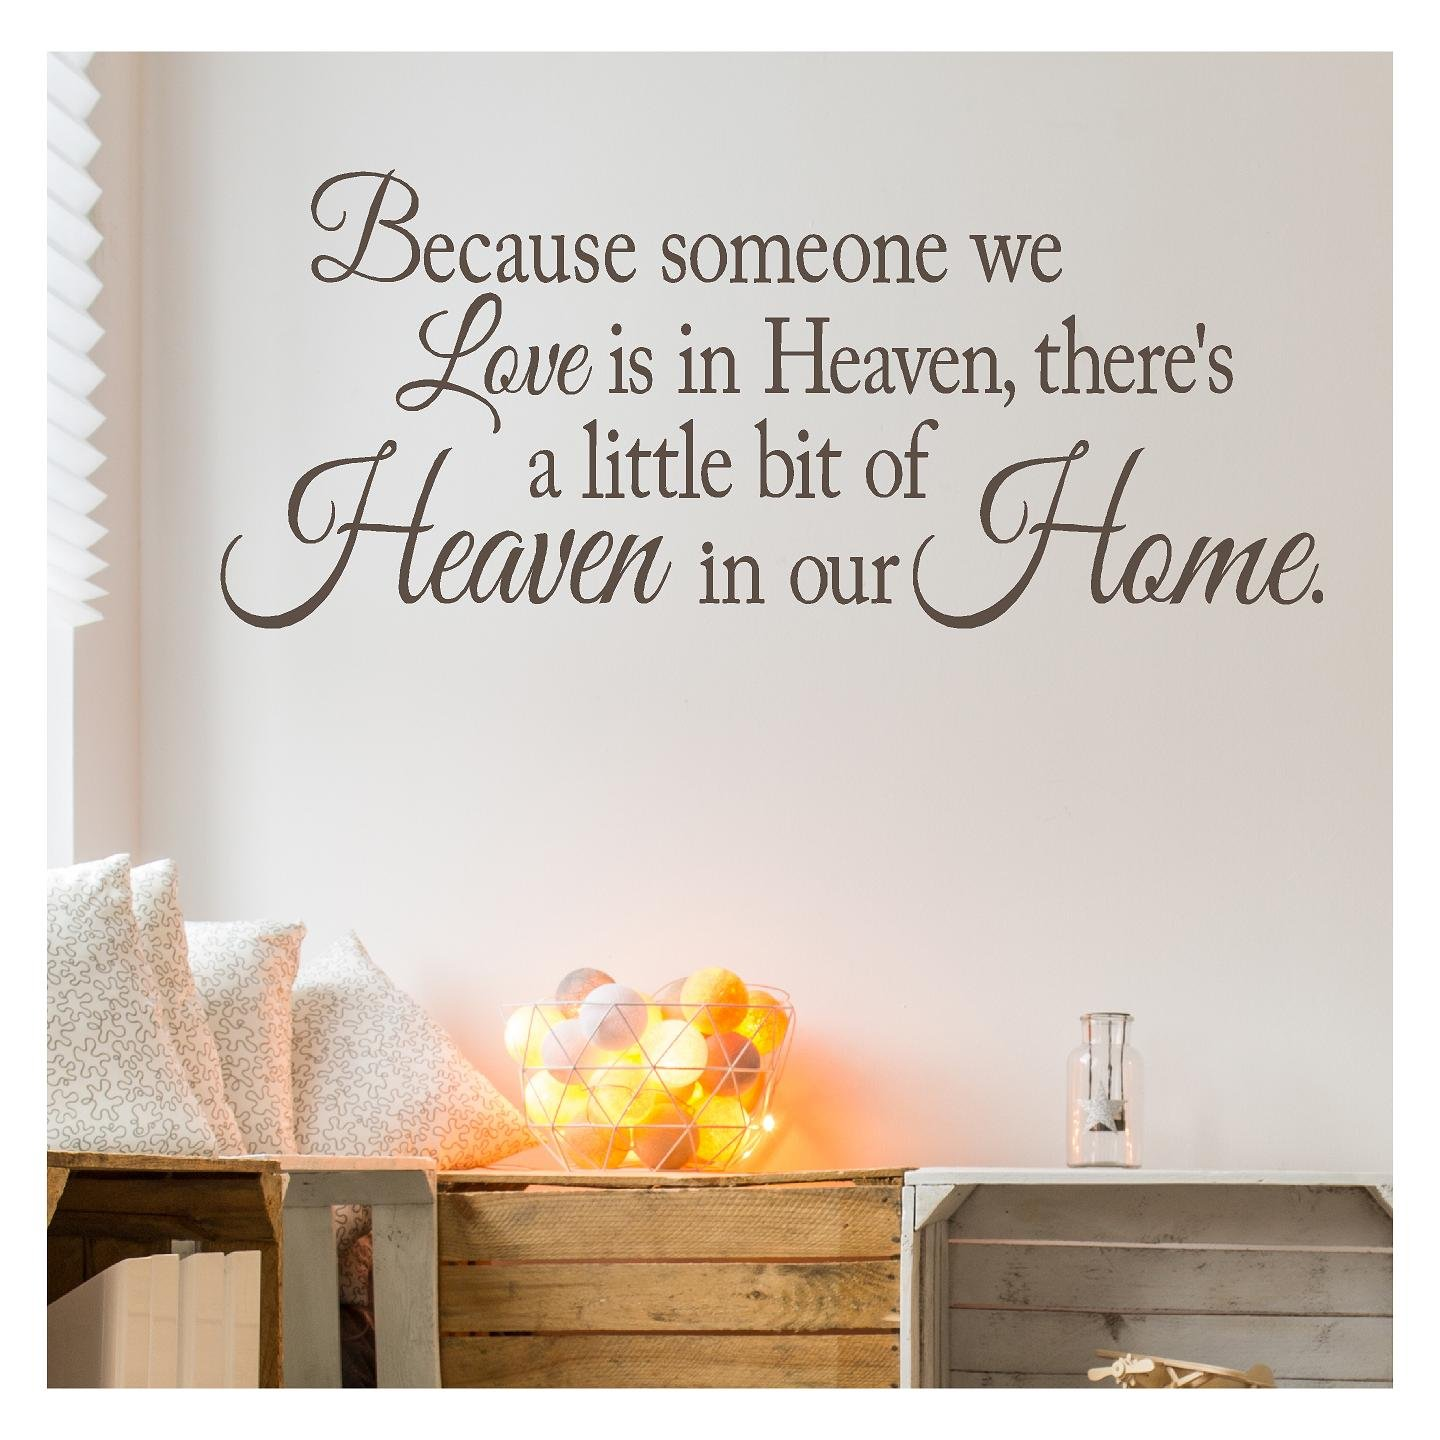 Because Someone We Love is in Heaven, There's a Little Bit of Heaven in Our Home Vinyl Lettering Wall Decal (16.5''H x 40''L, Metallic Bronze)